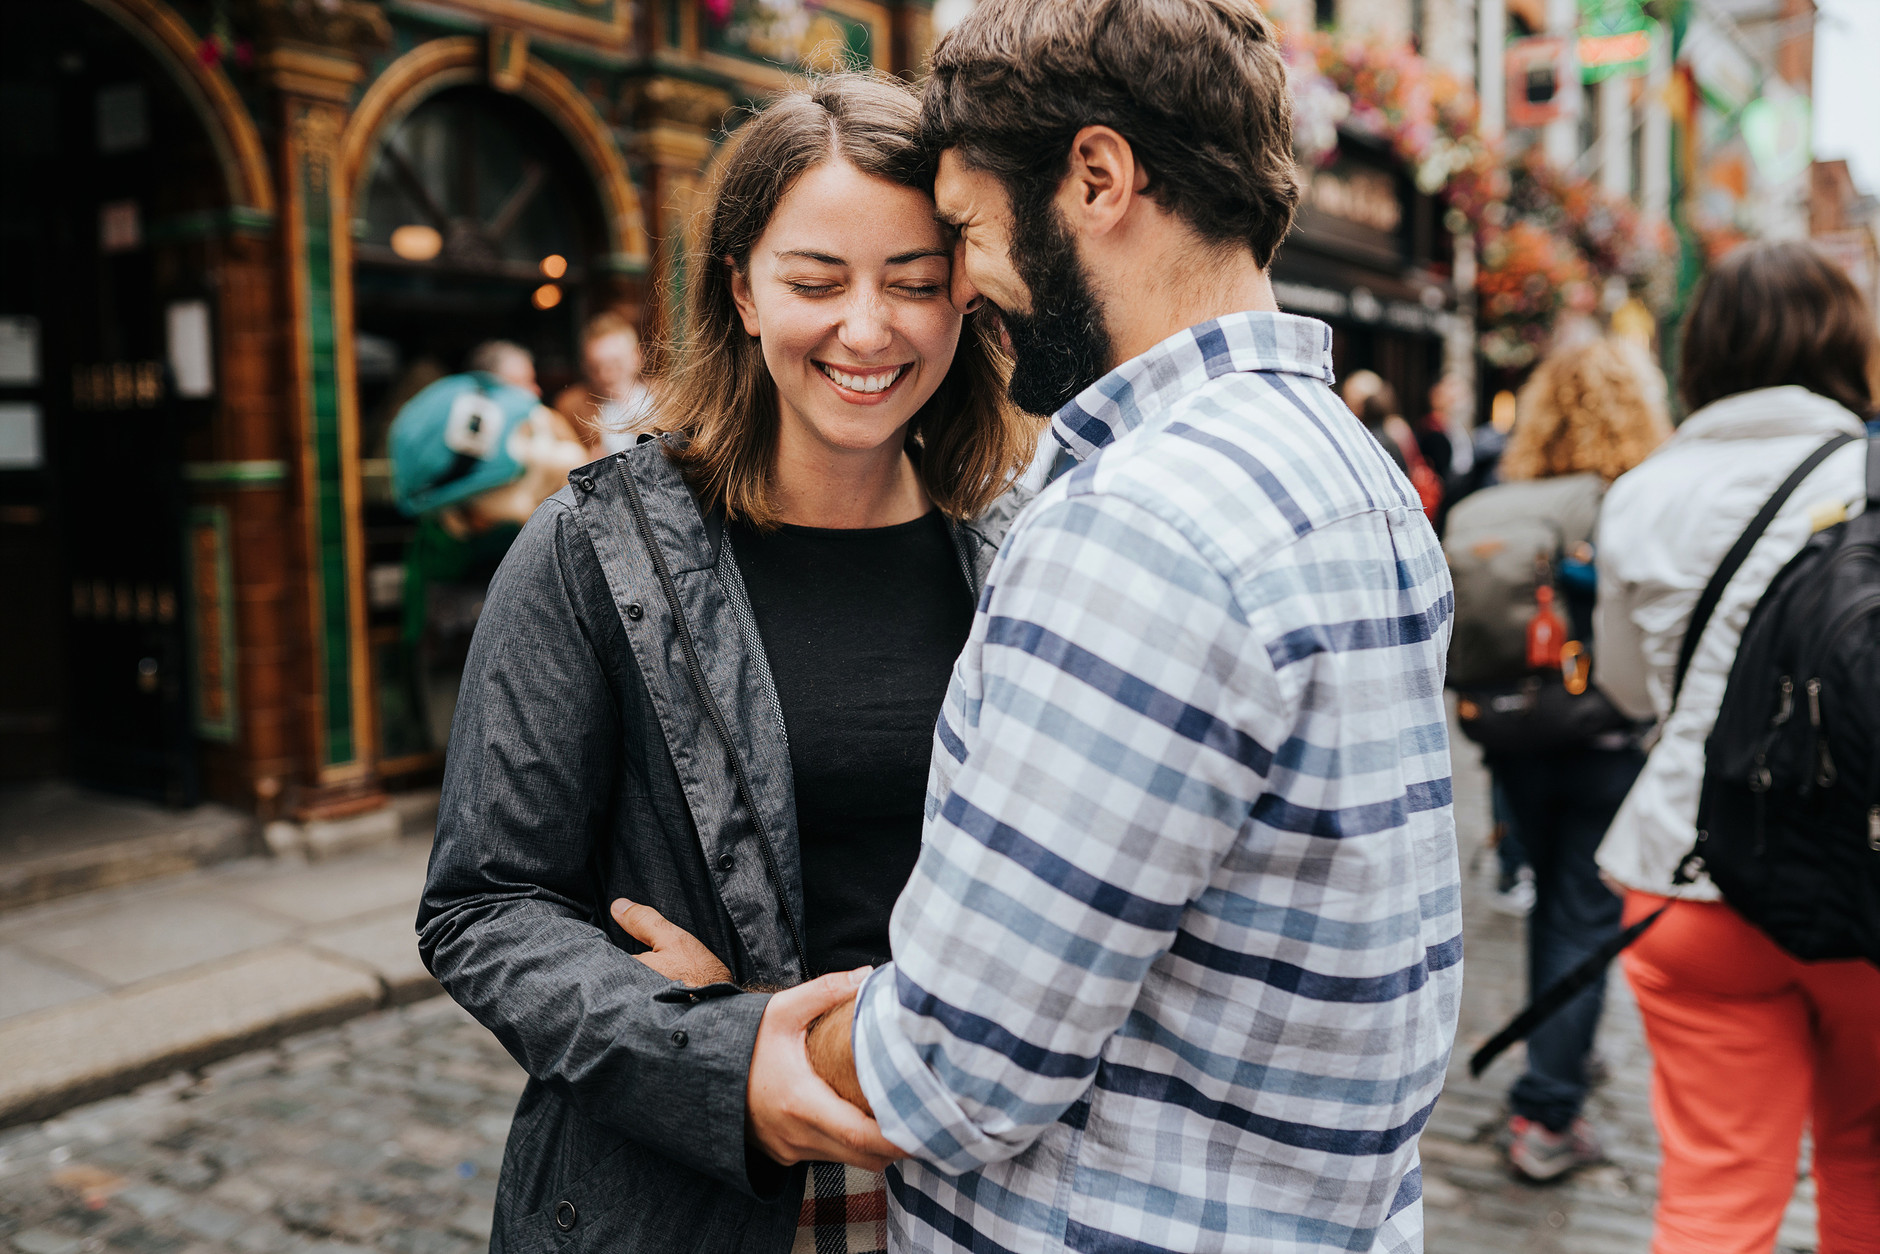 Closeup of the cute couple on vacation laughing in the street of Dublin City